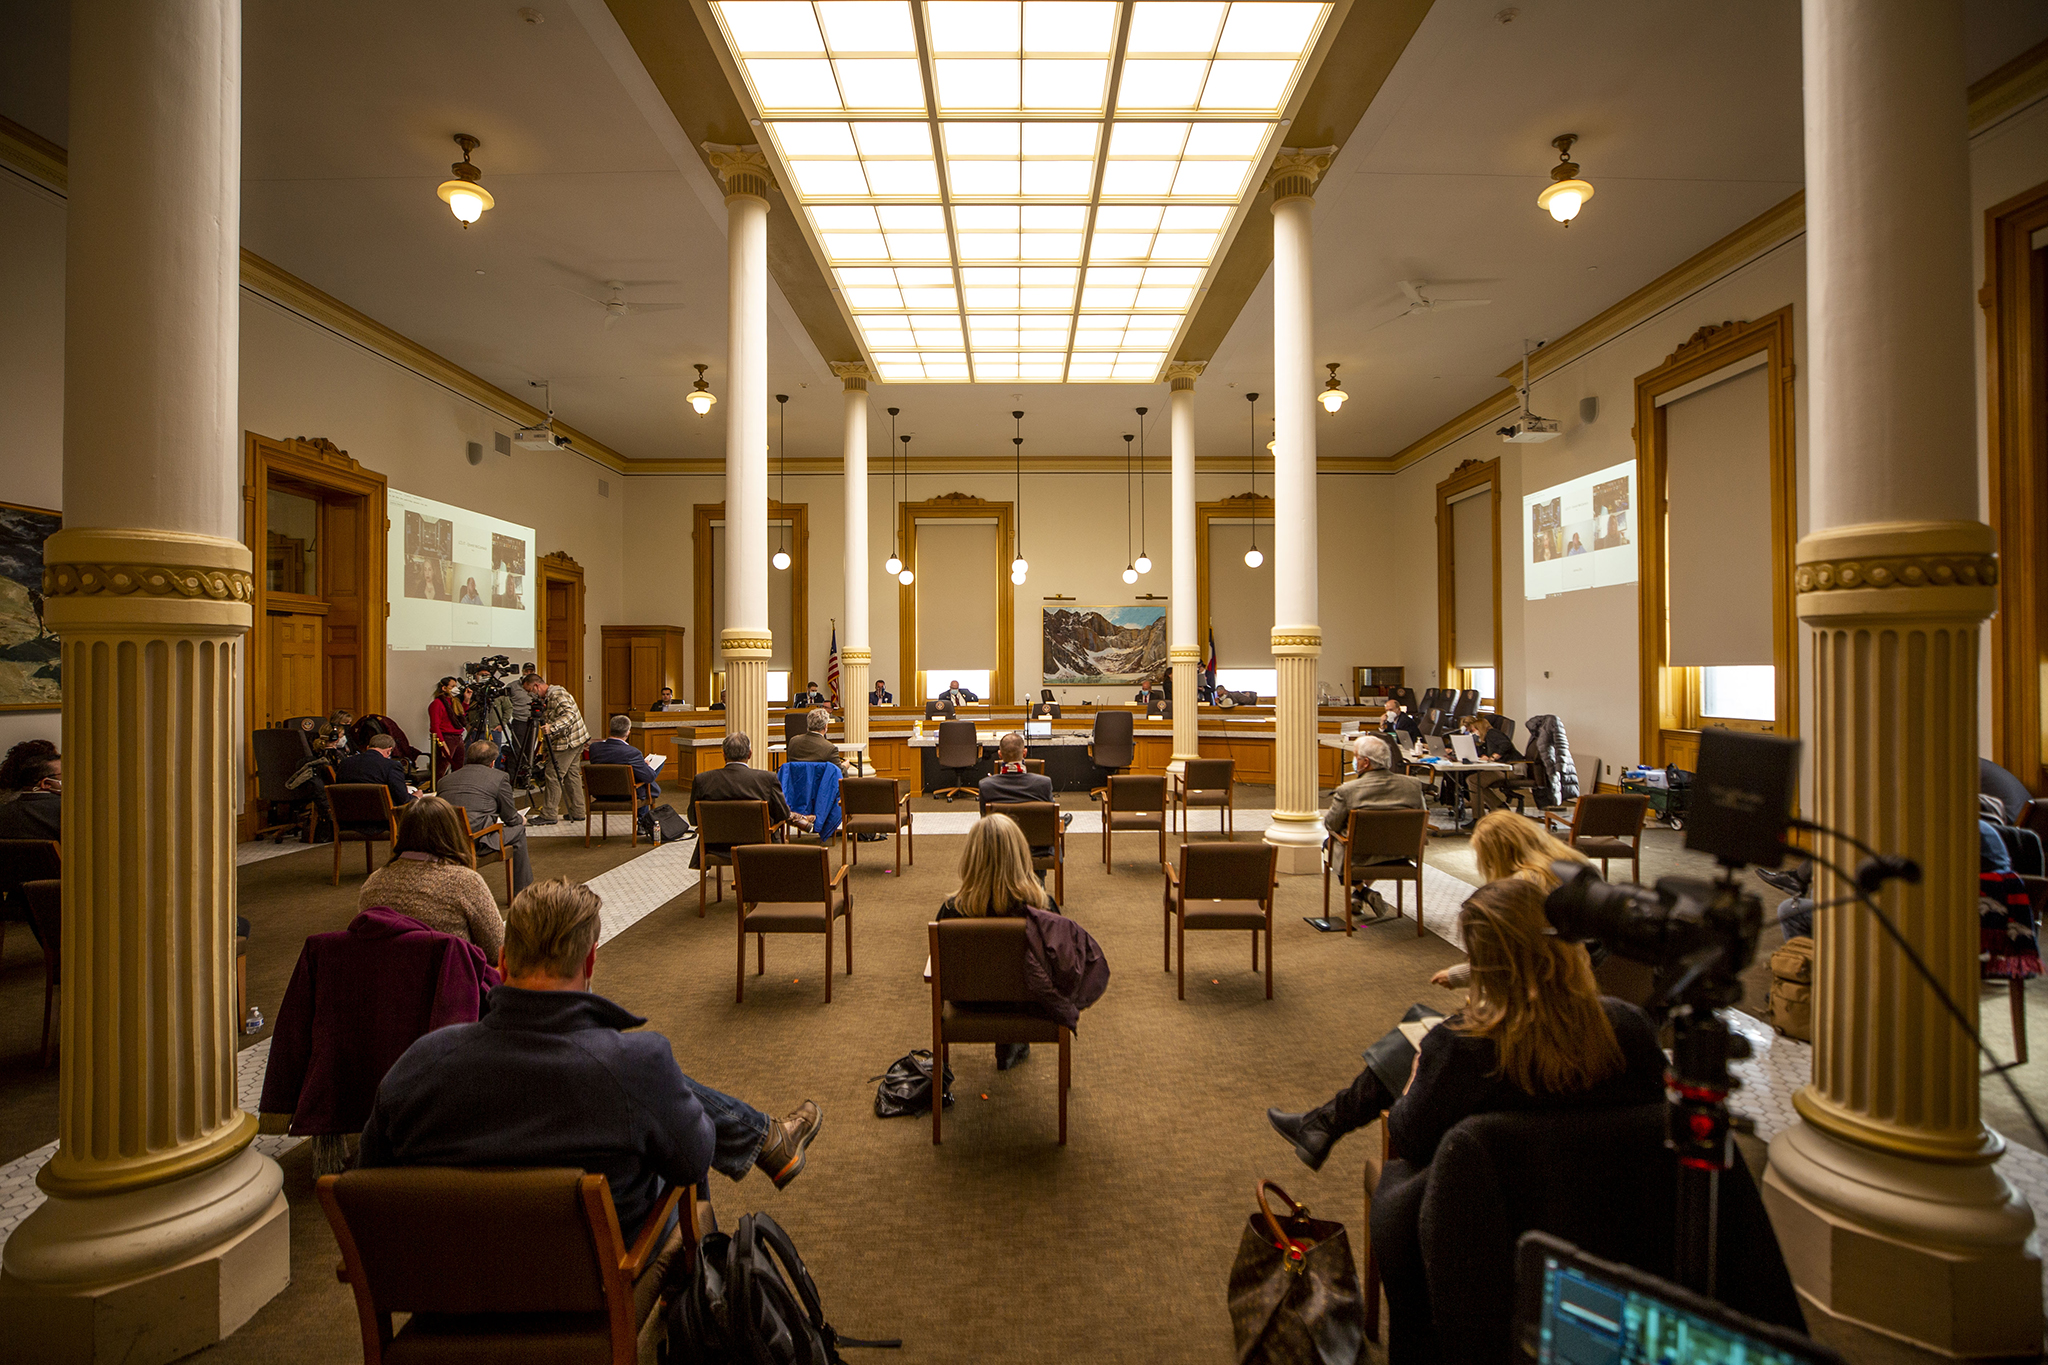 A hearing on election integrity at the Colorado State Capitol. Dec. 15, 2020.